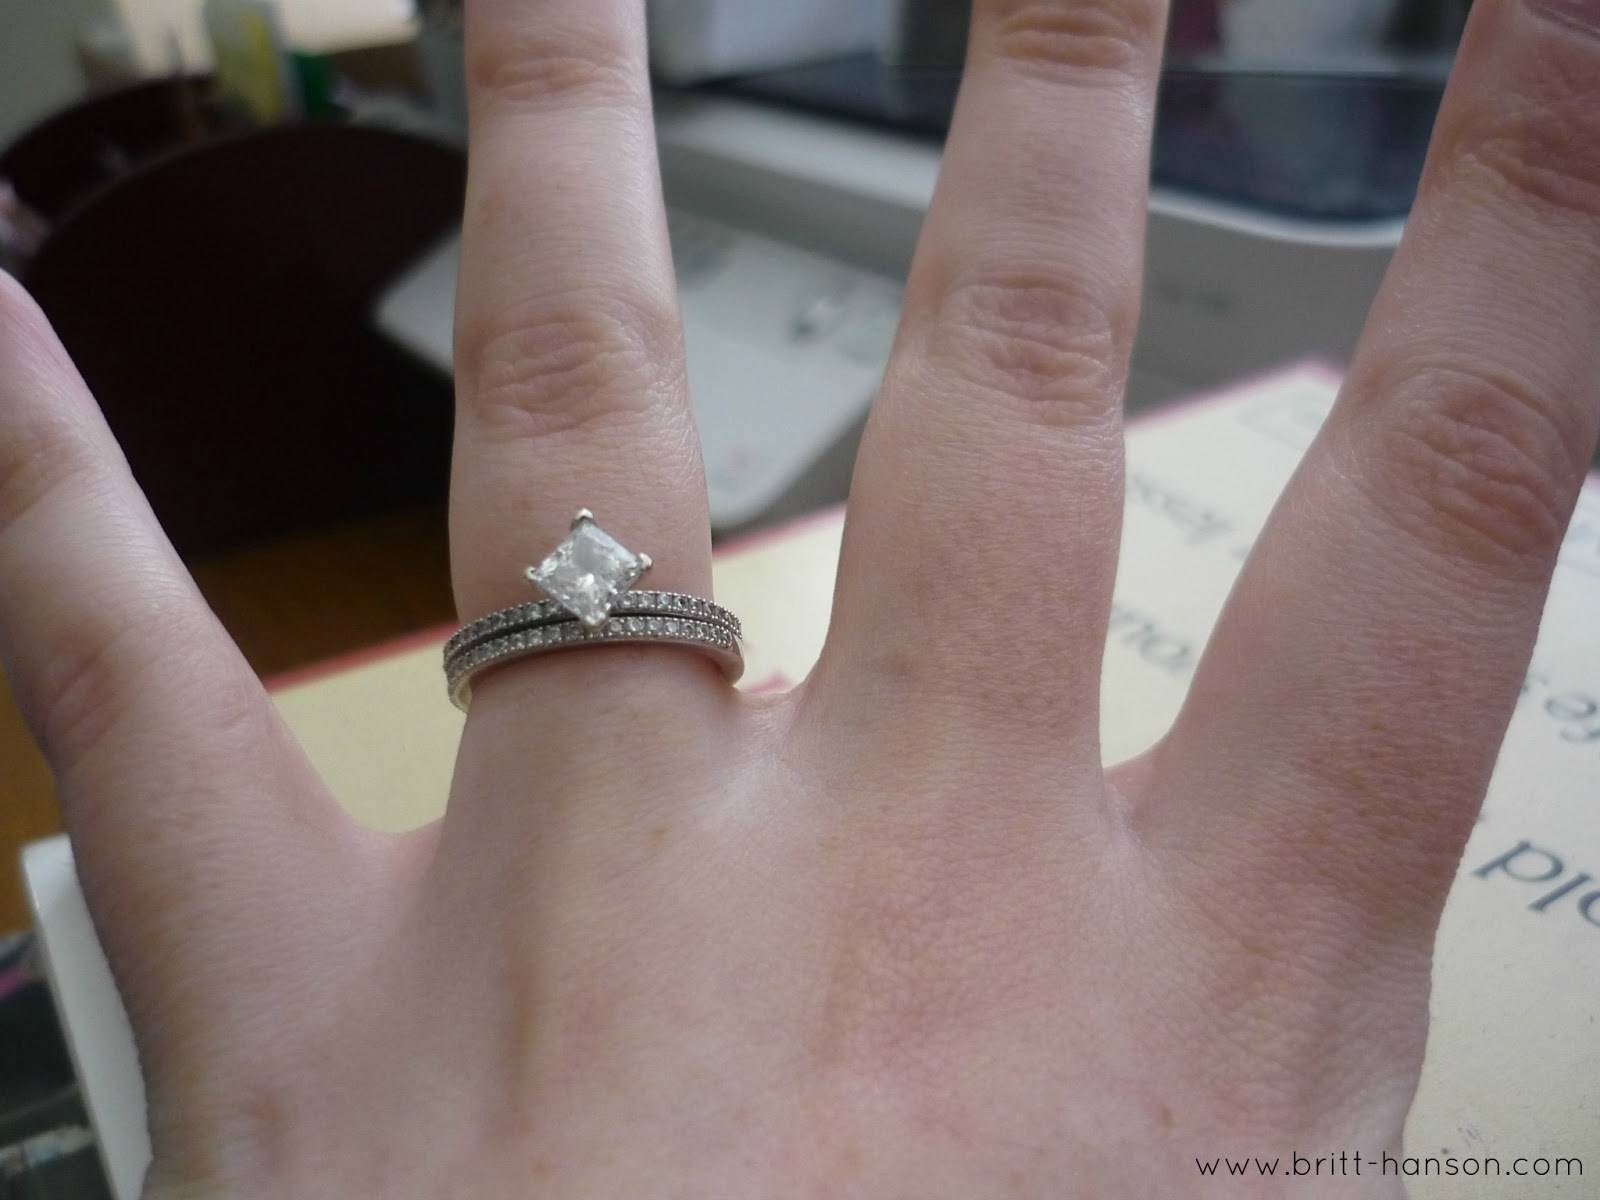 My Little Sunshines – Our Love Story Archives – My Little Sunshines Intended For Love Story Wedding Rings (View 8 of 15)